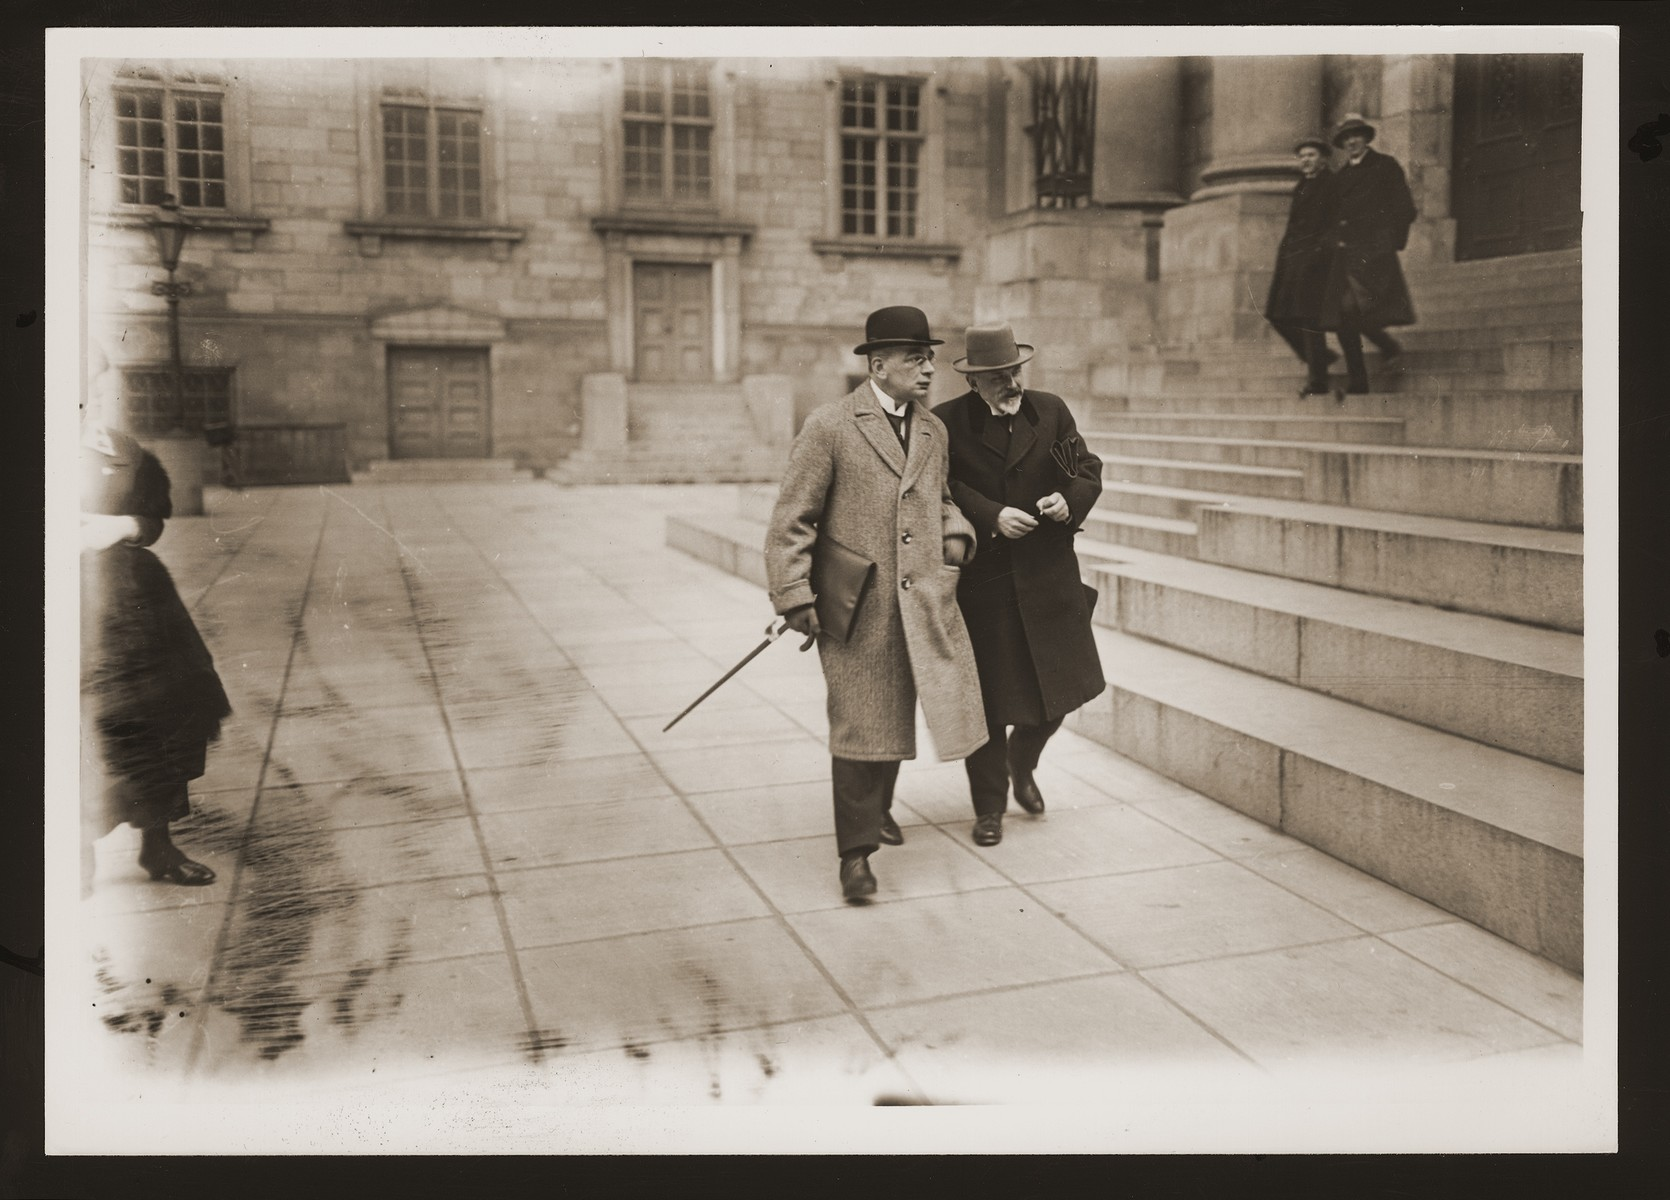 Barrister Carl Bertil Henriques (left) walks outside with a colleague.